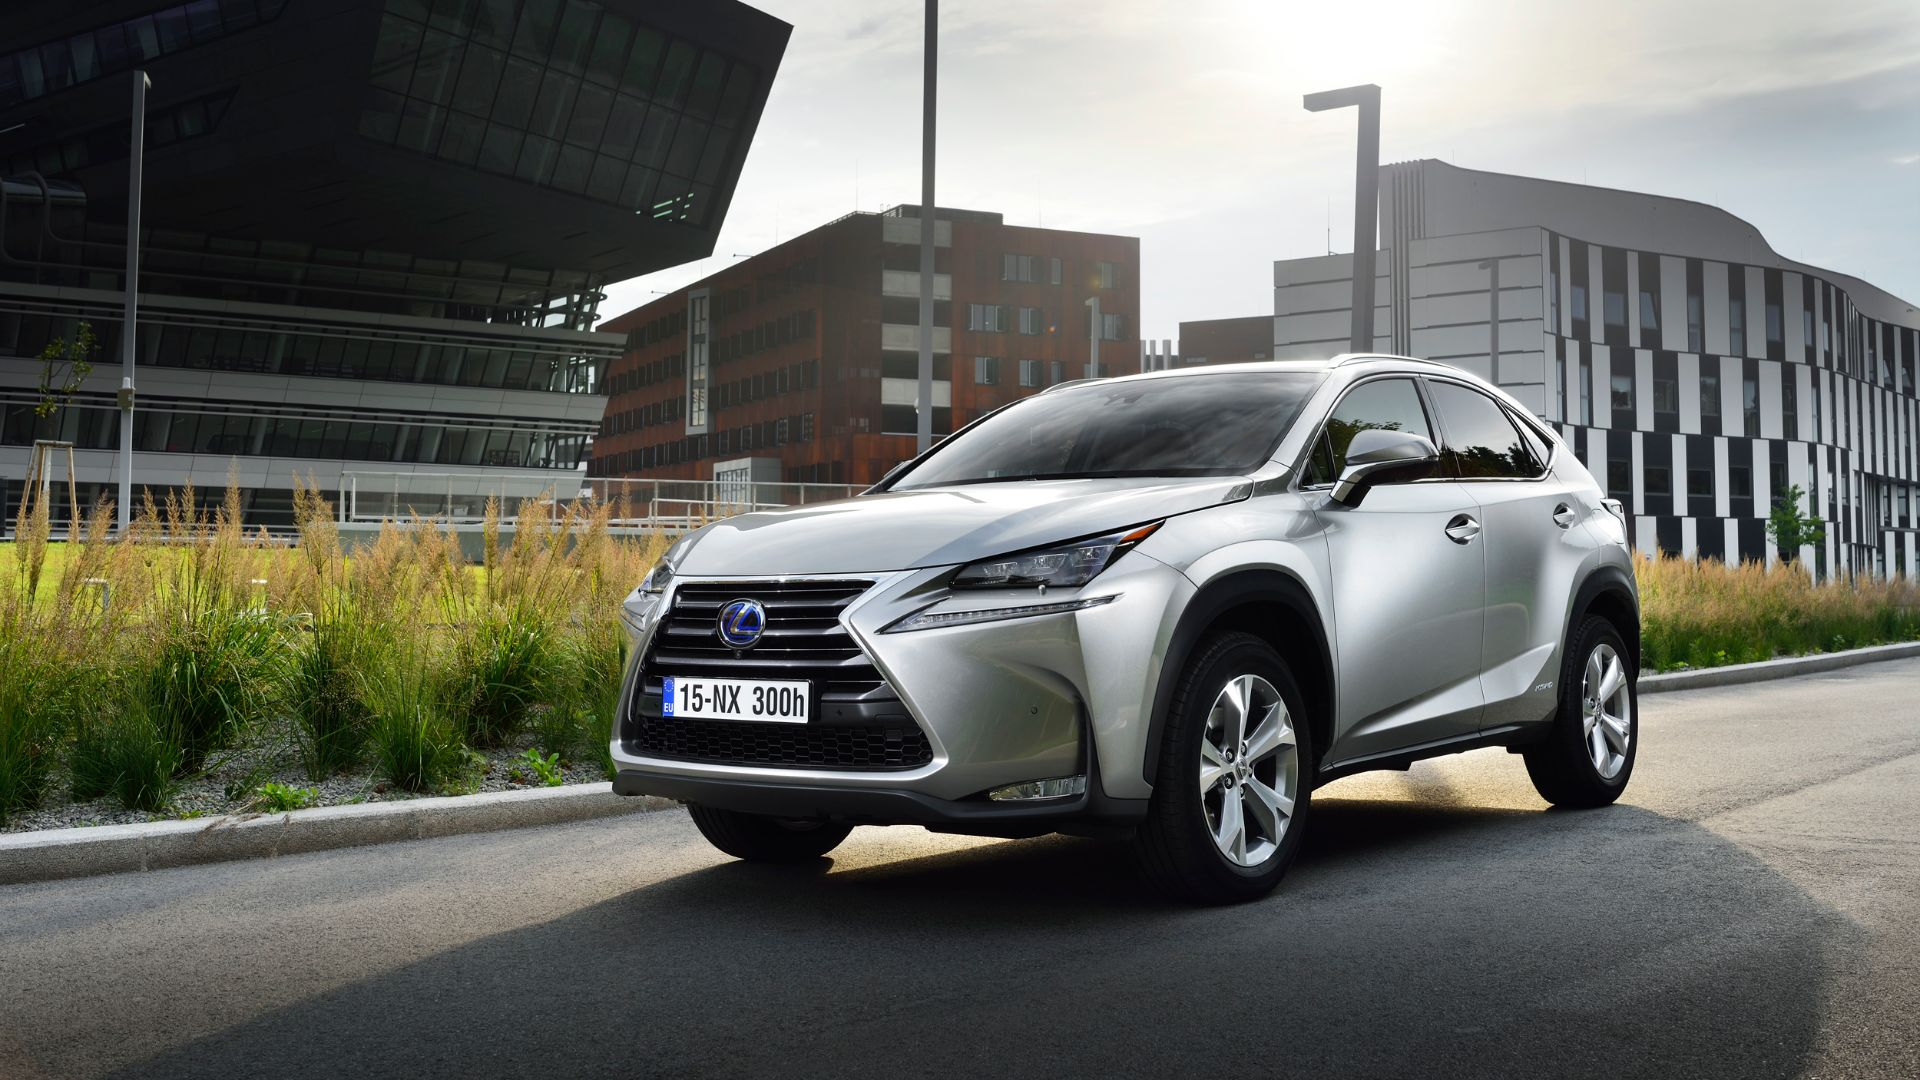 Norway deems Lexus 'self-charging' adverts misleading